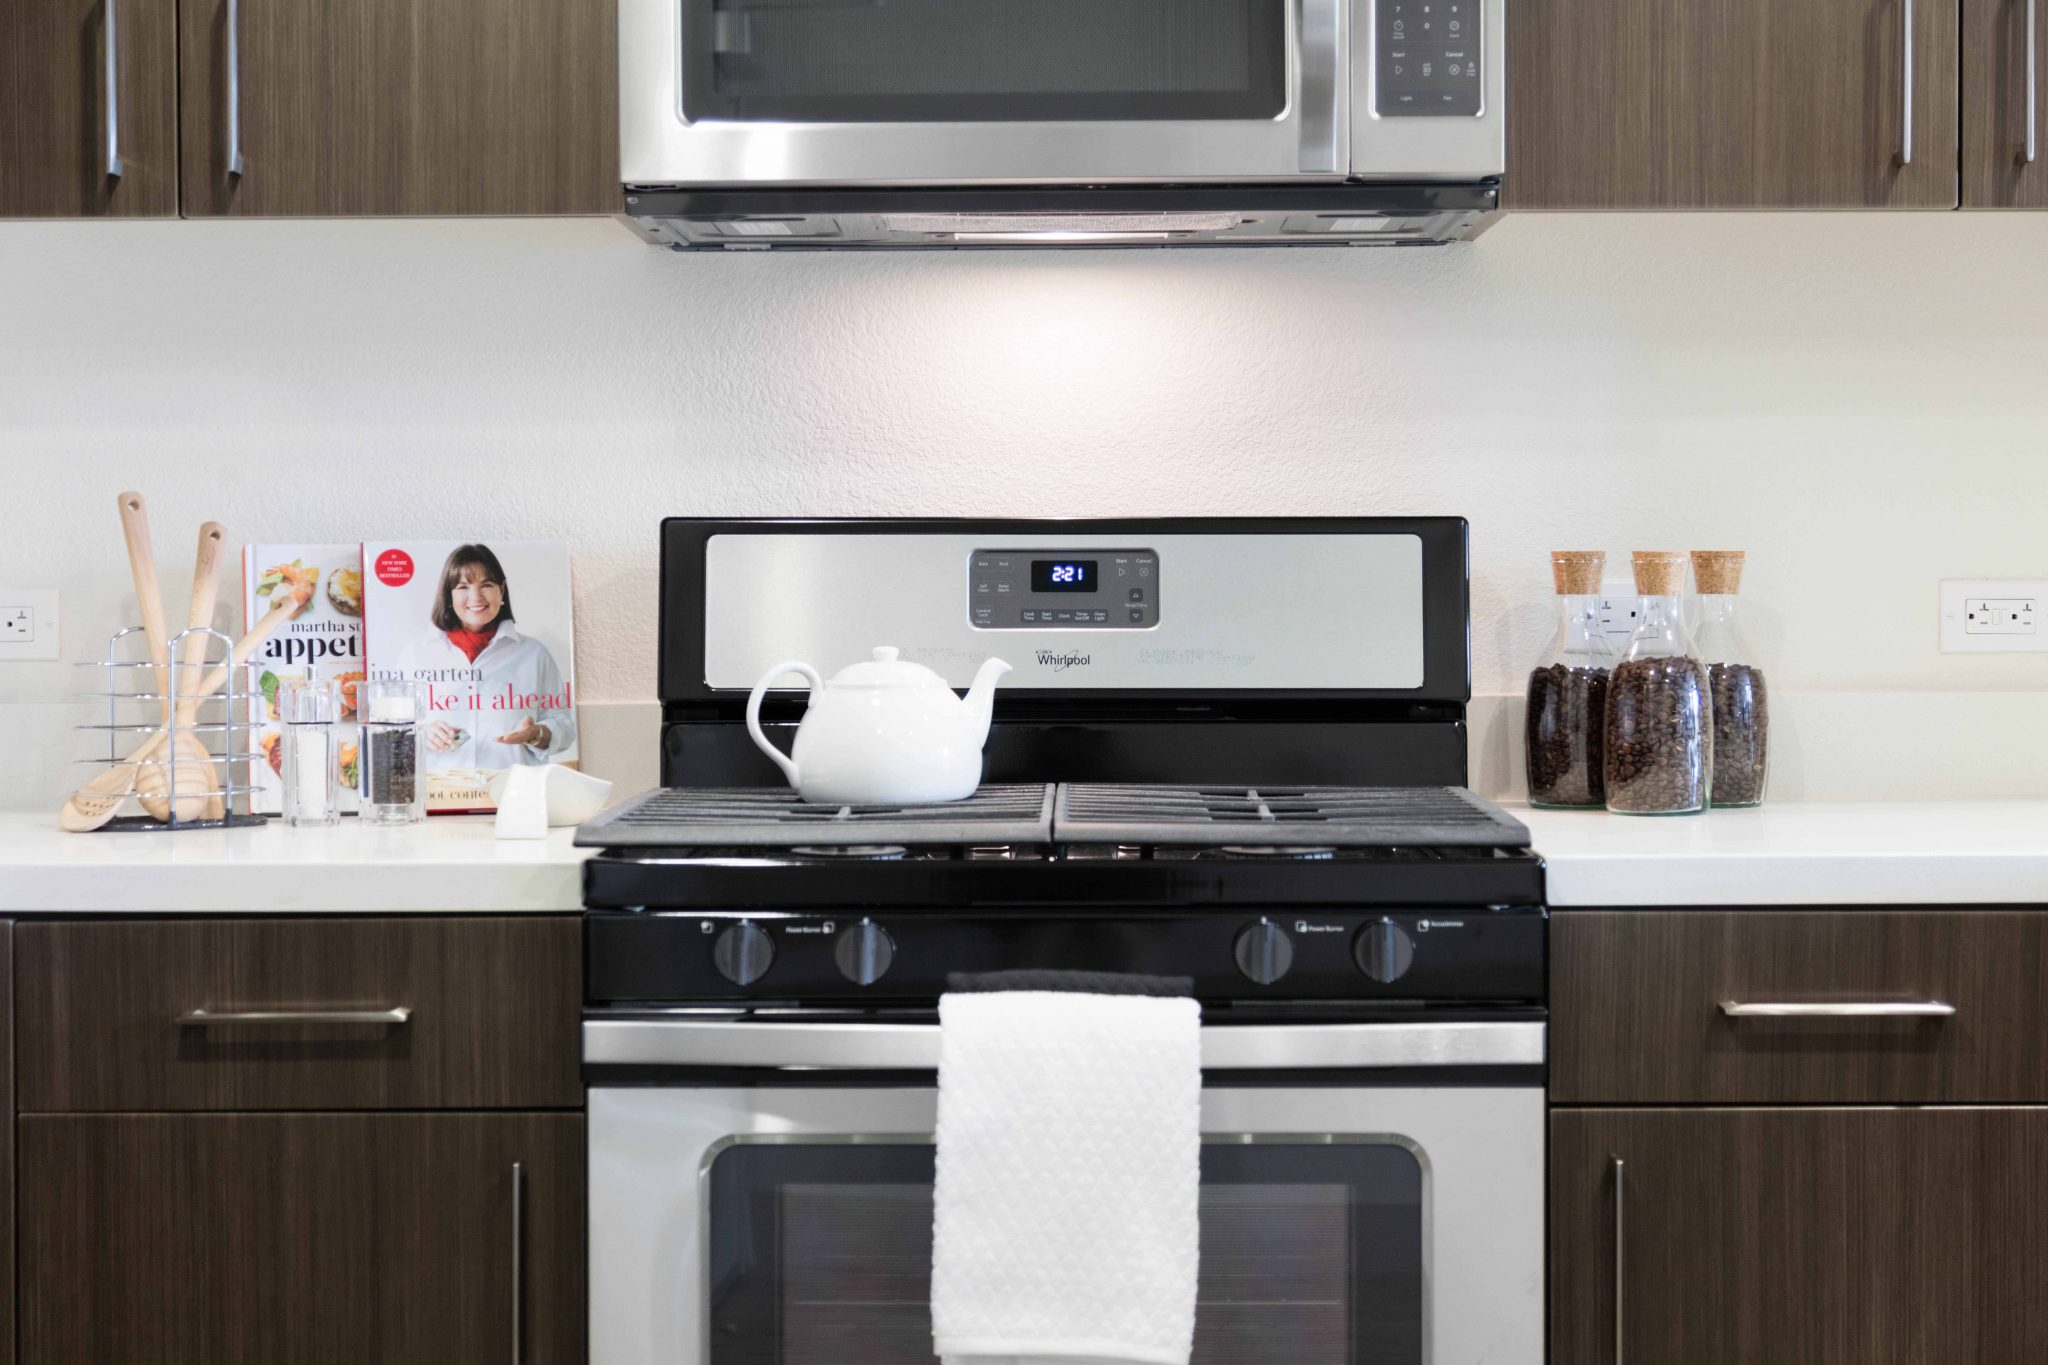 Stainless steel stove and cooktop in kitchen with dark cabinets